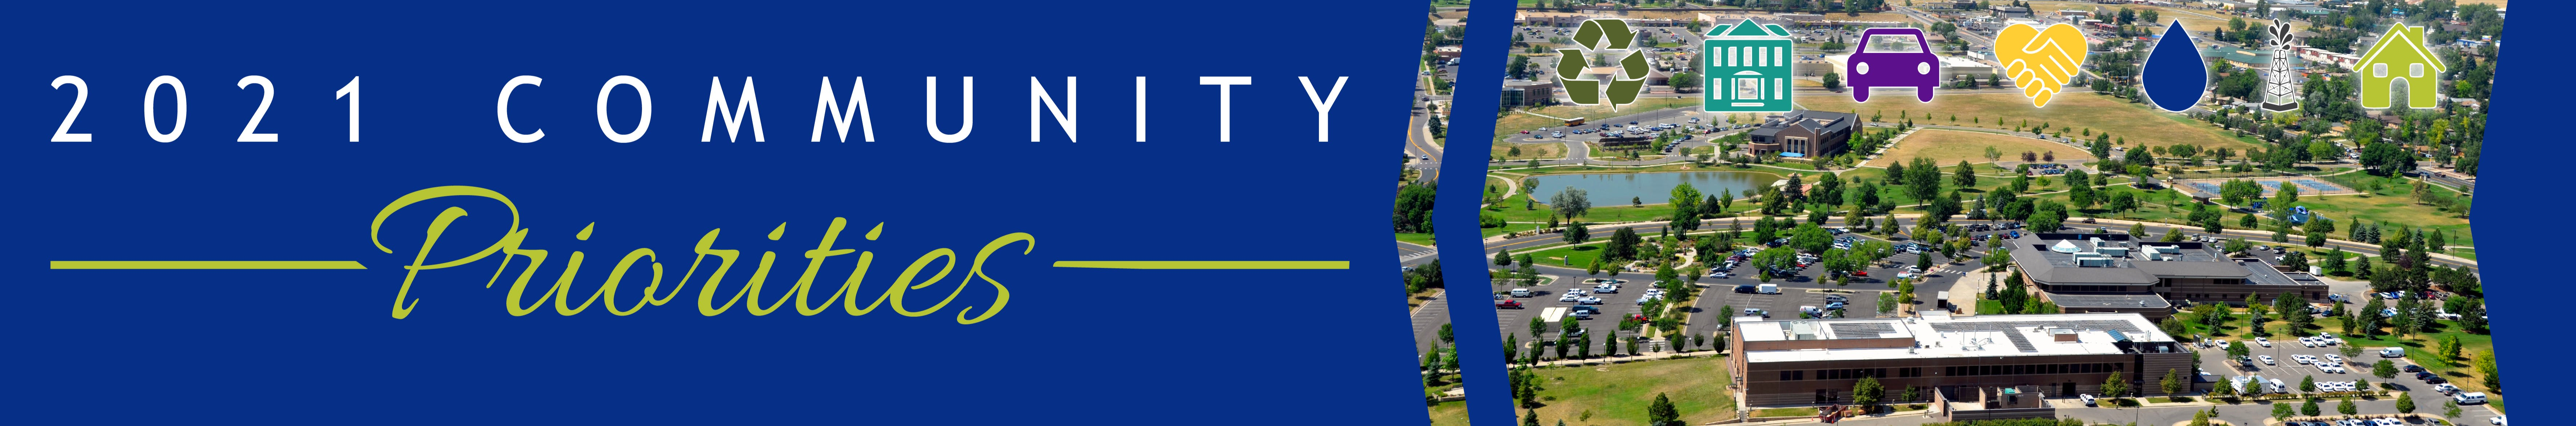 2021 Community Priorities header image featuring an aerial view of Community Park